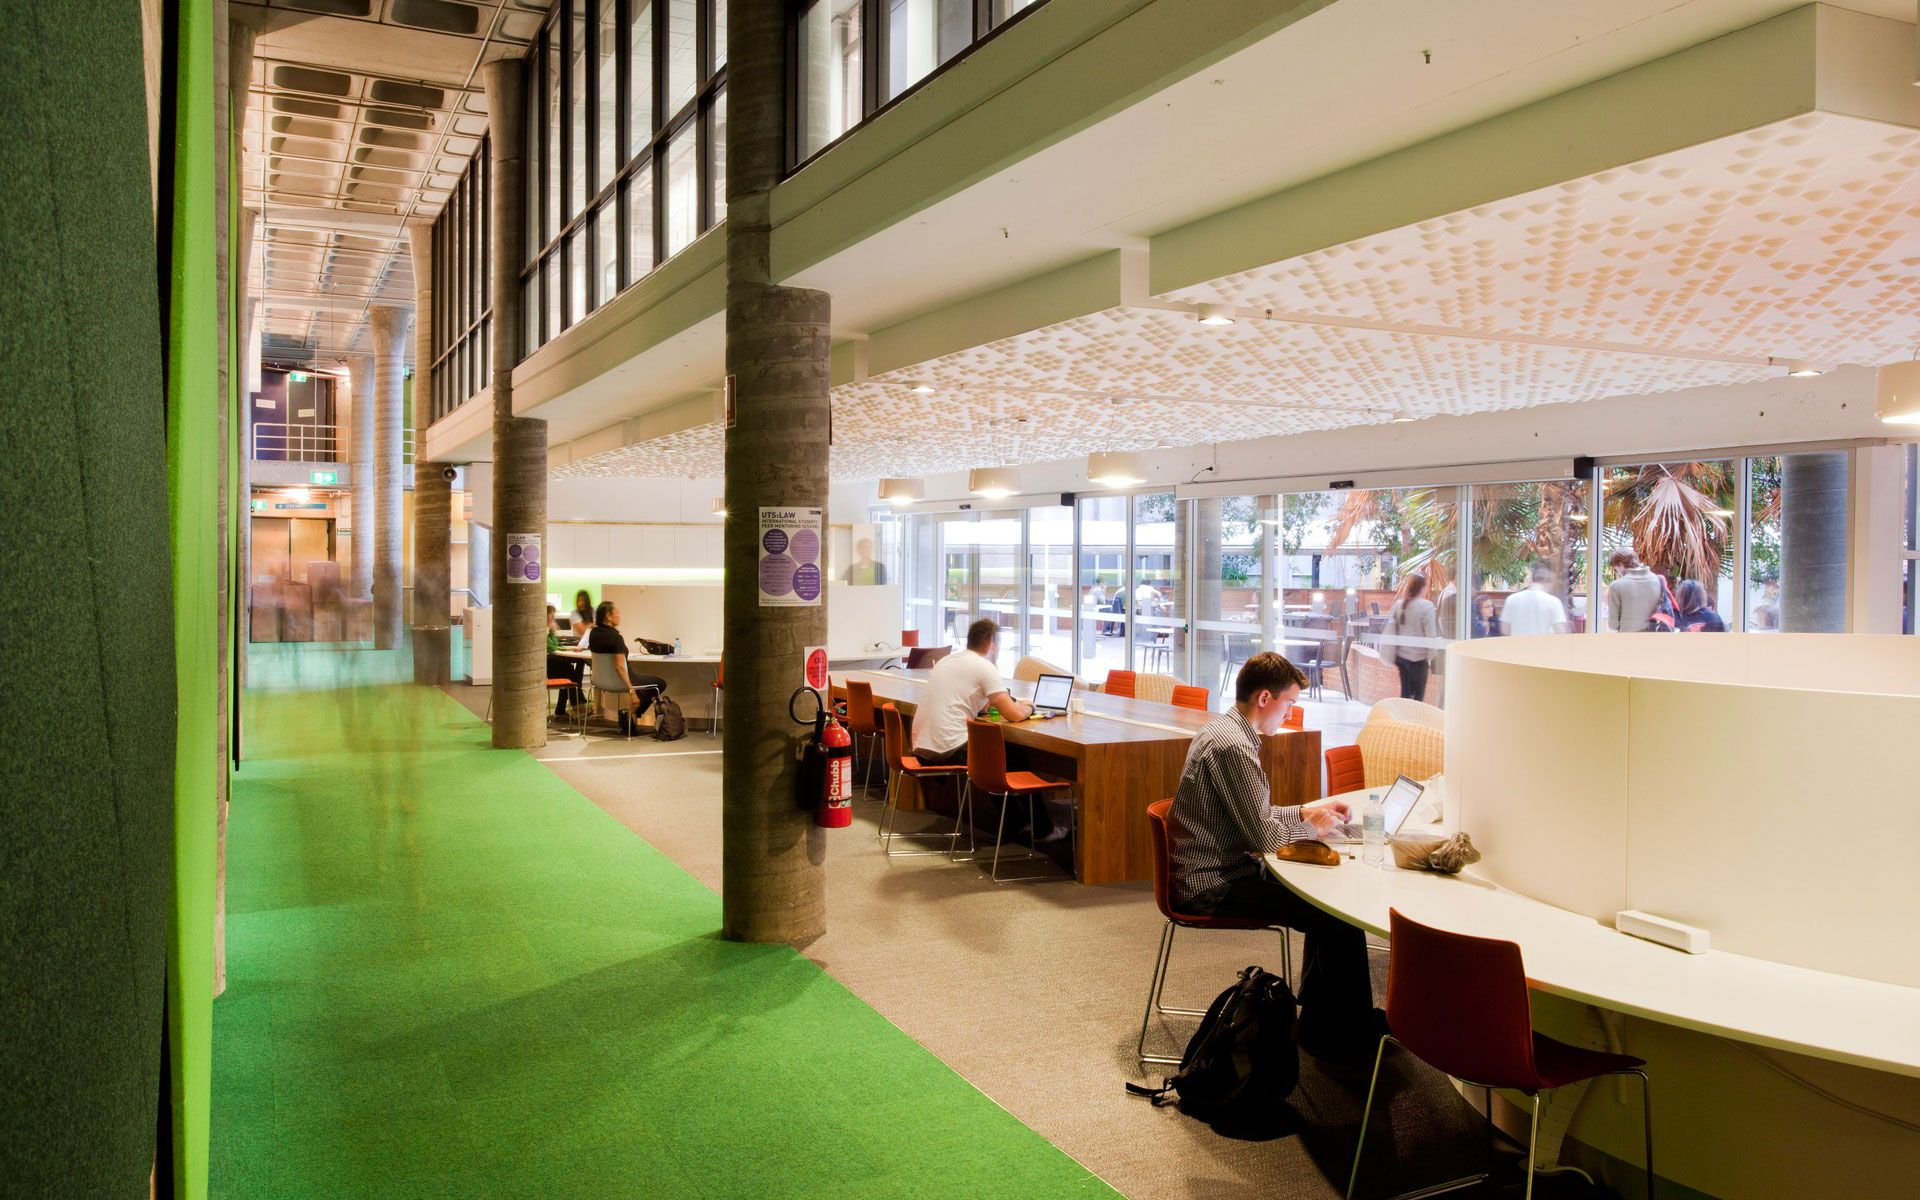 Woods Bagot Creates Study Spaces For The Modern Student At Sydneys University Of Technology